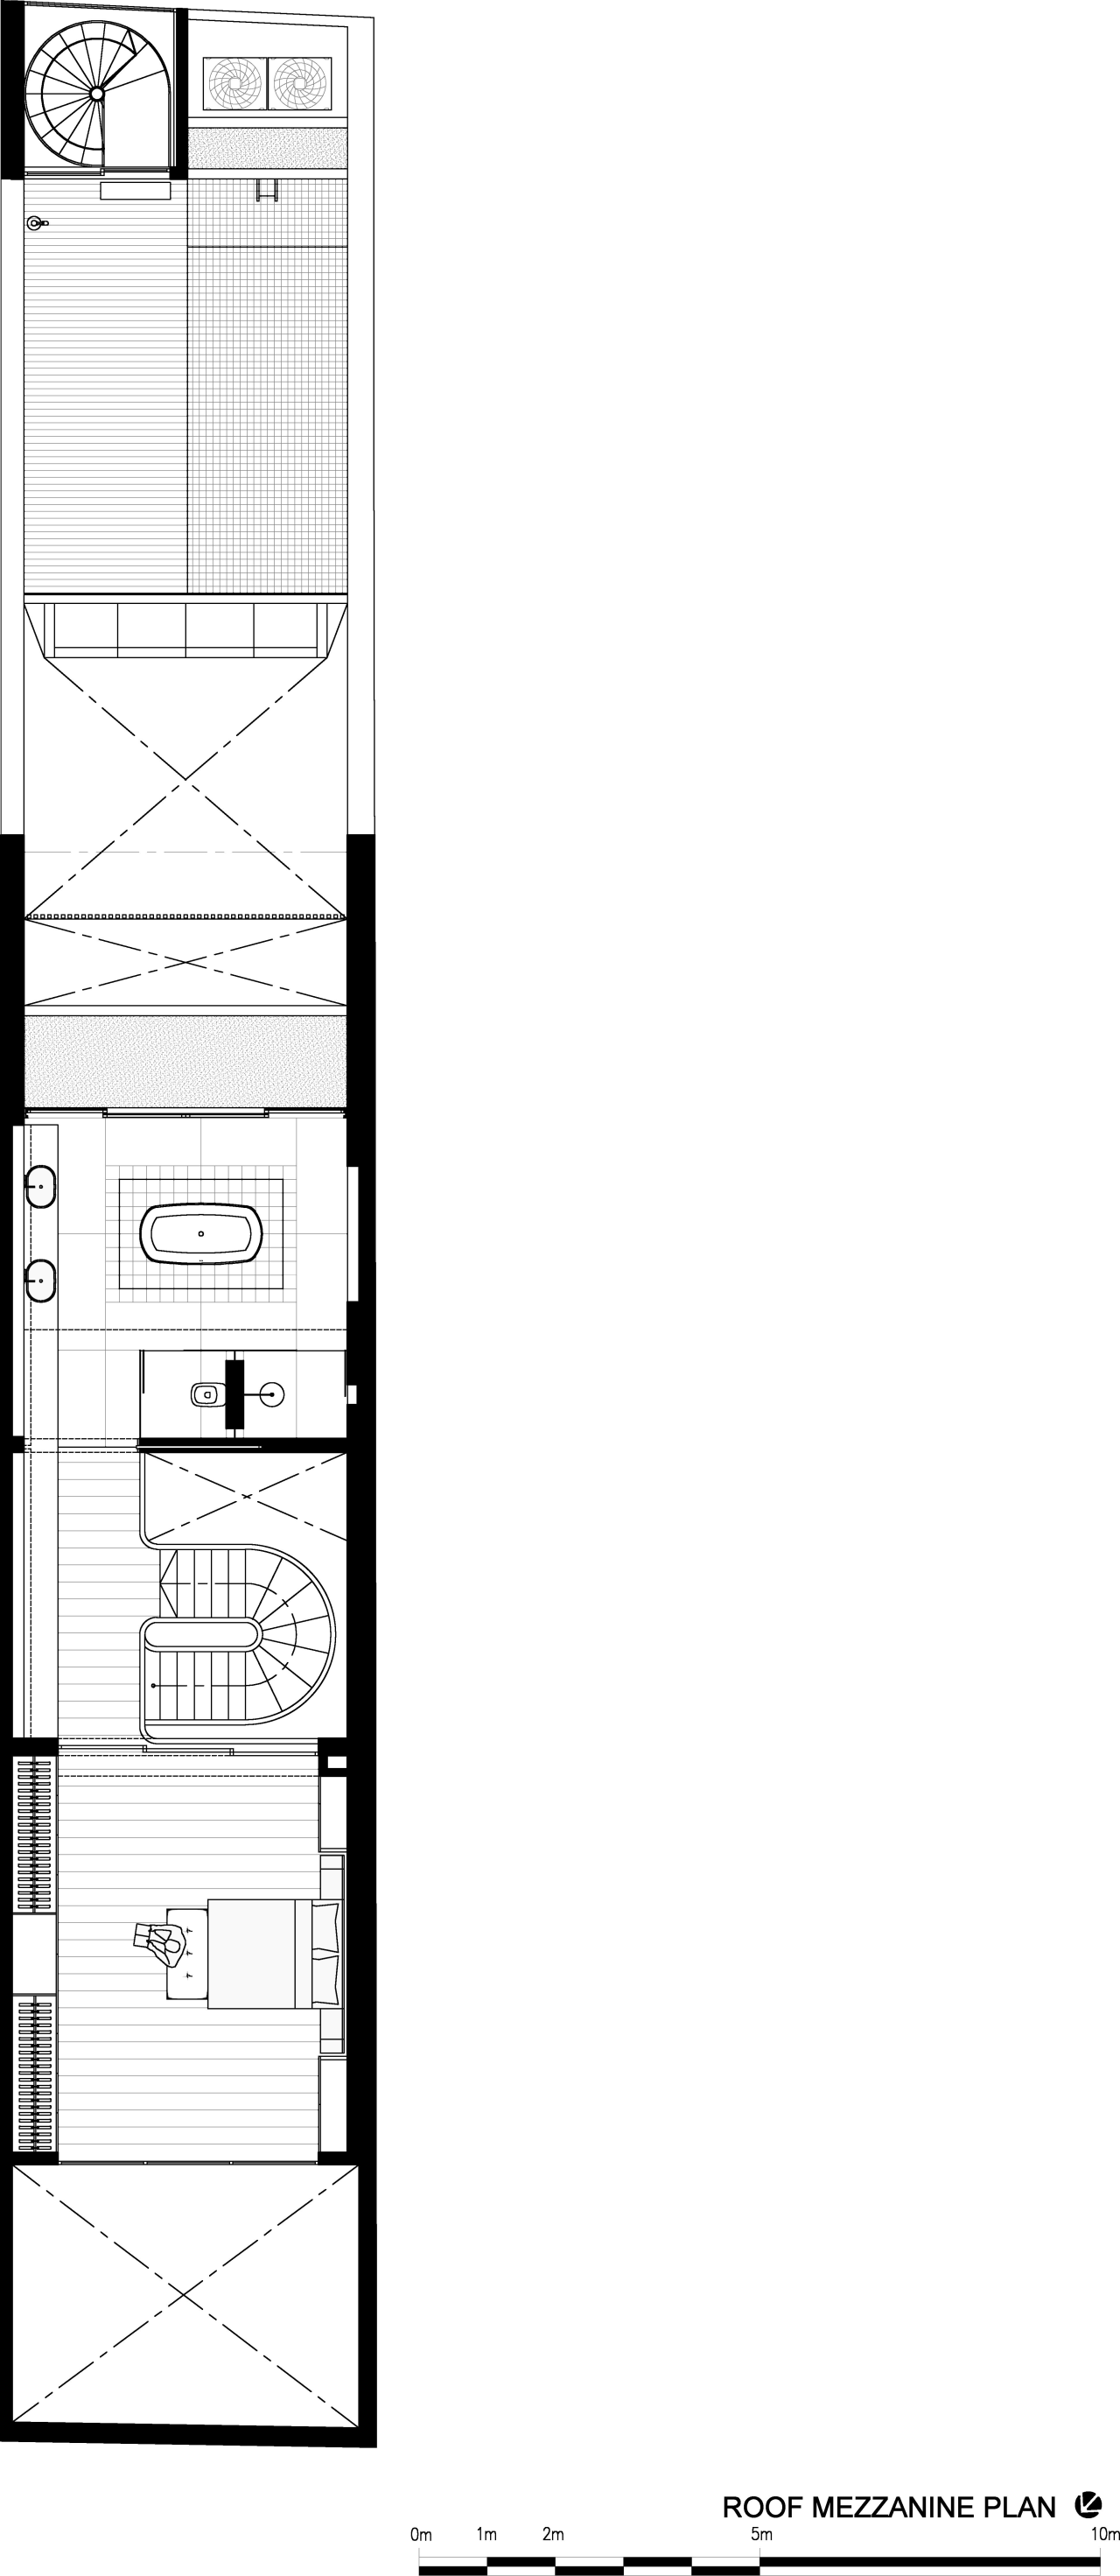 Attic floor plan of renovated Singapore shophouse area, black and white, design, diagram, drawing, floor plan, font, line, paper, product design, structure, text, white